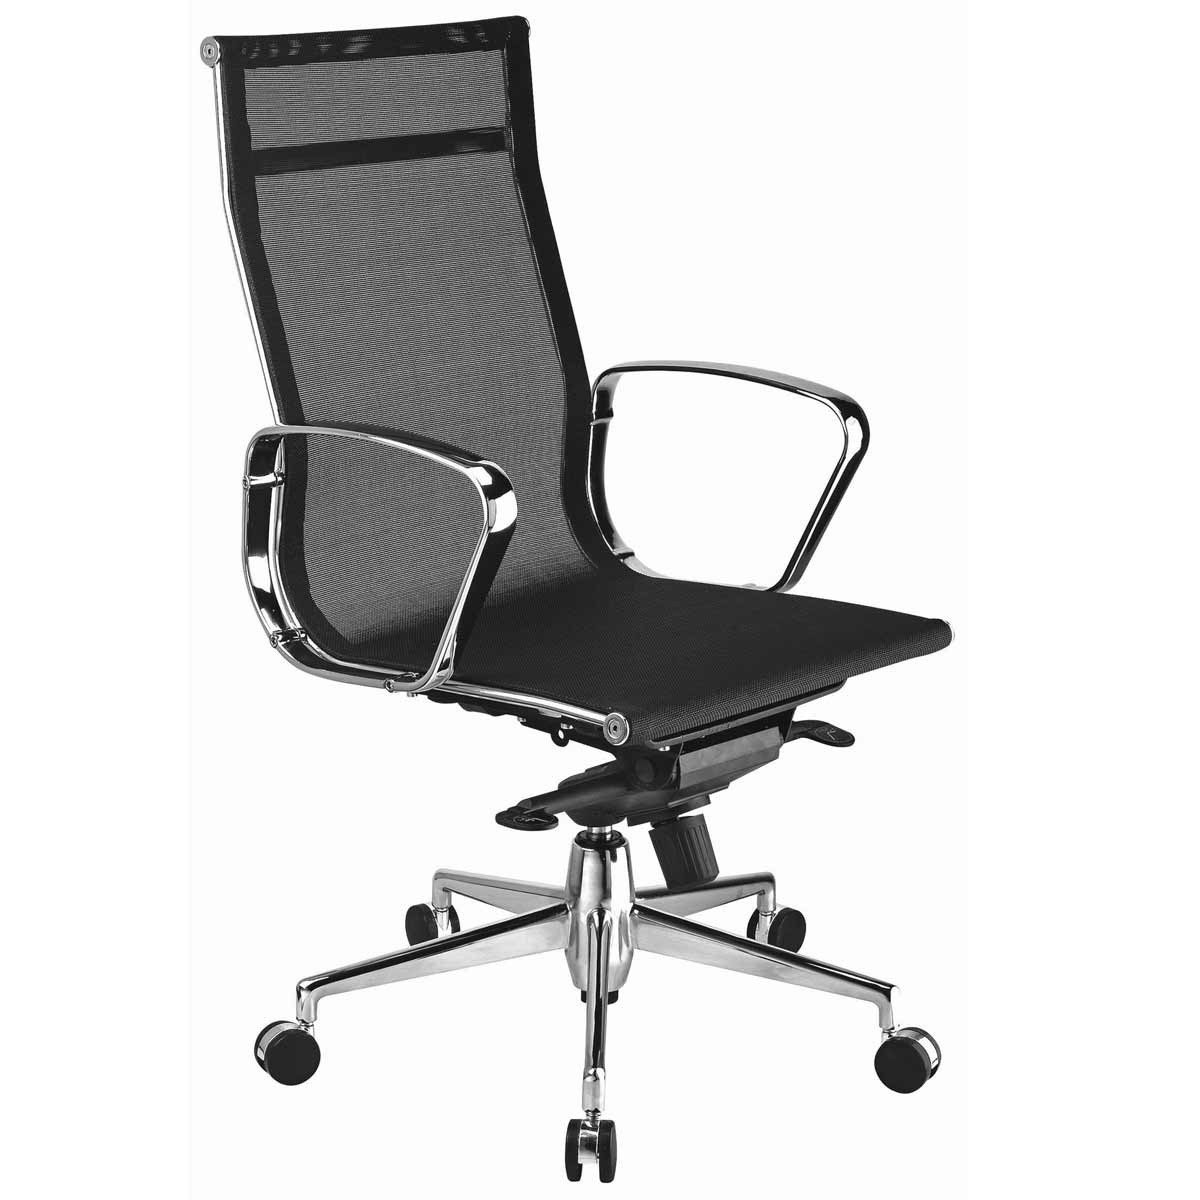 office chair computer chair executive chair  Office Furniture